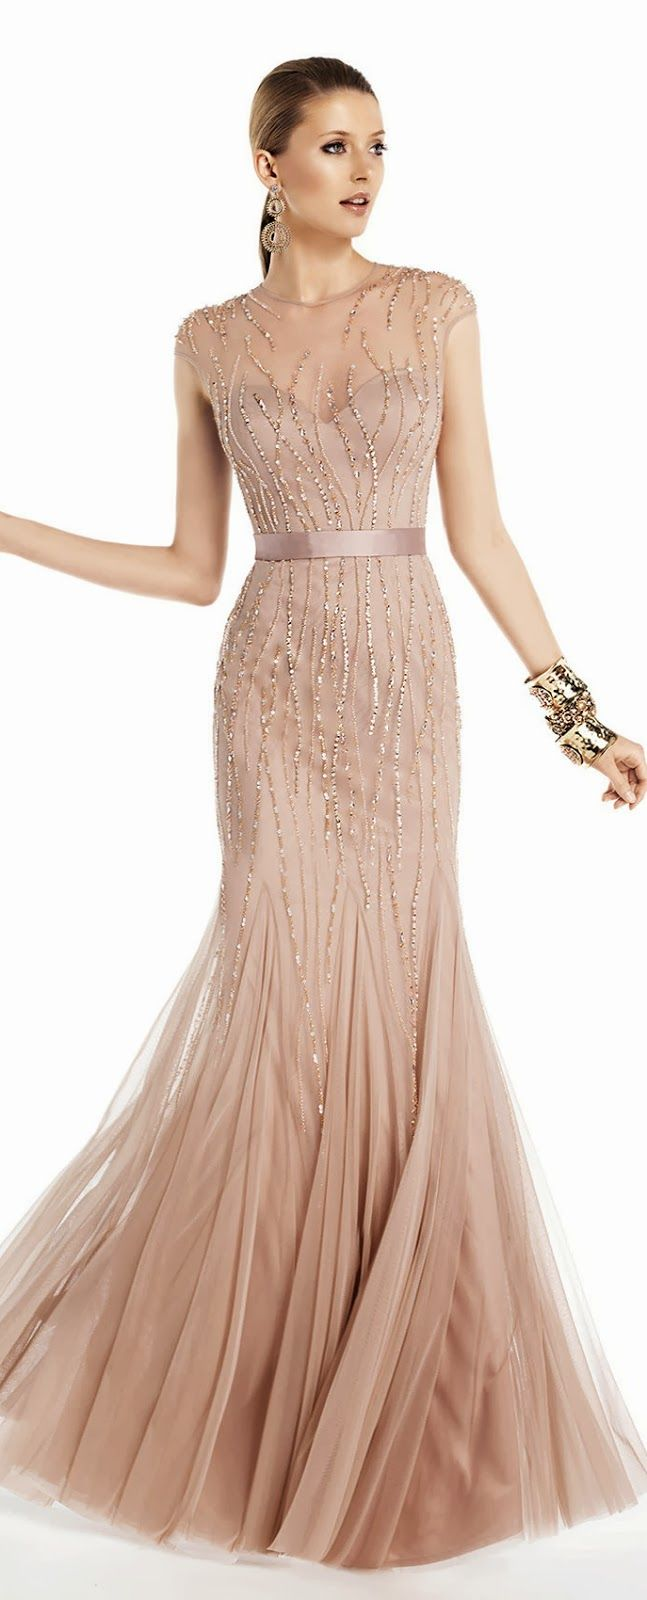 148 best the dress images on pinterest | the dress, boyfriends and